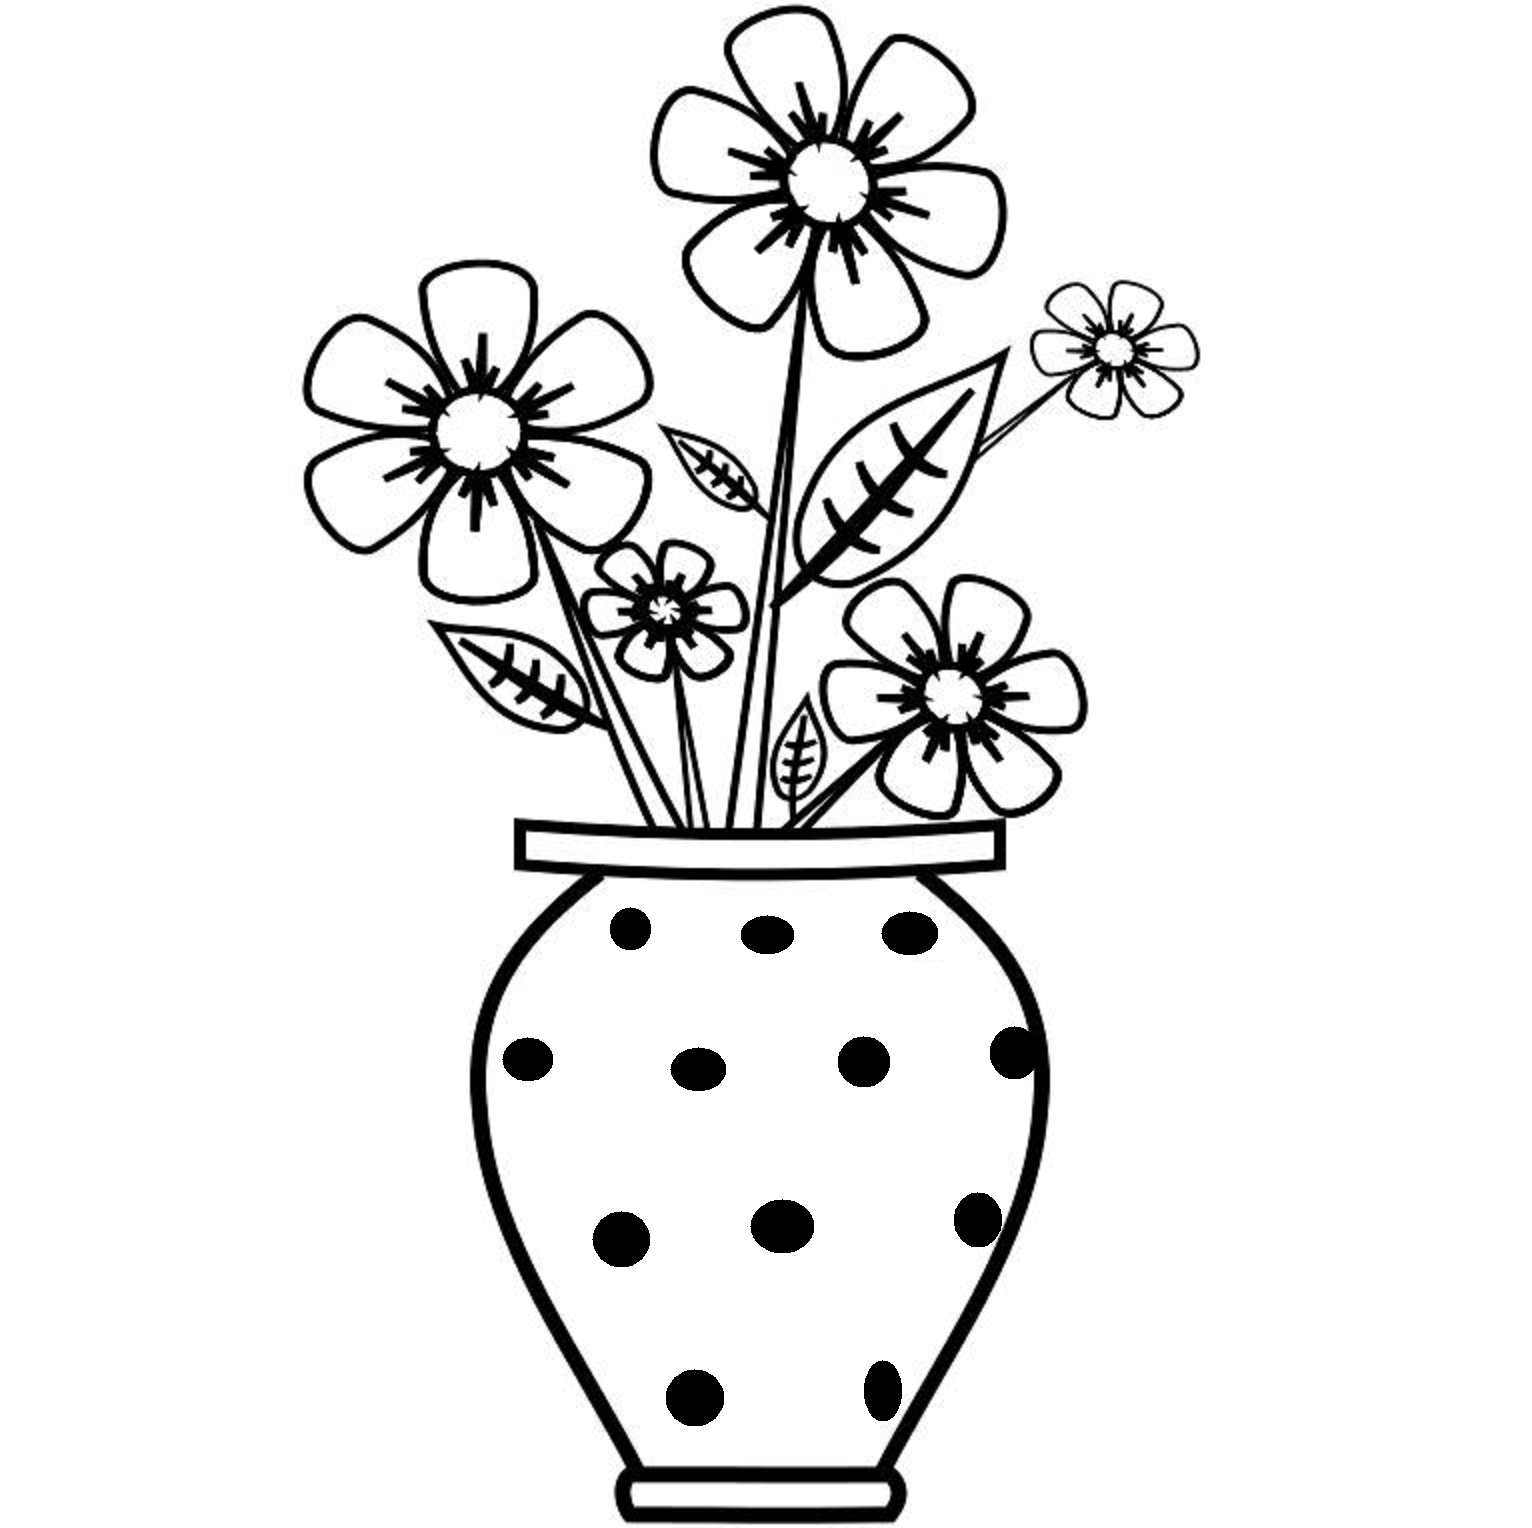 Vase Drawing Car Interior Design